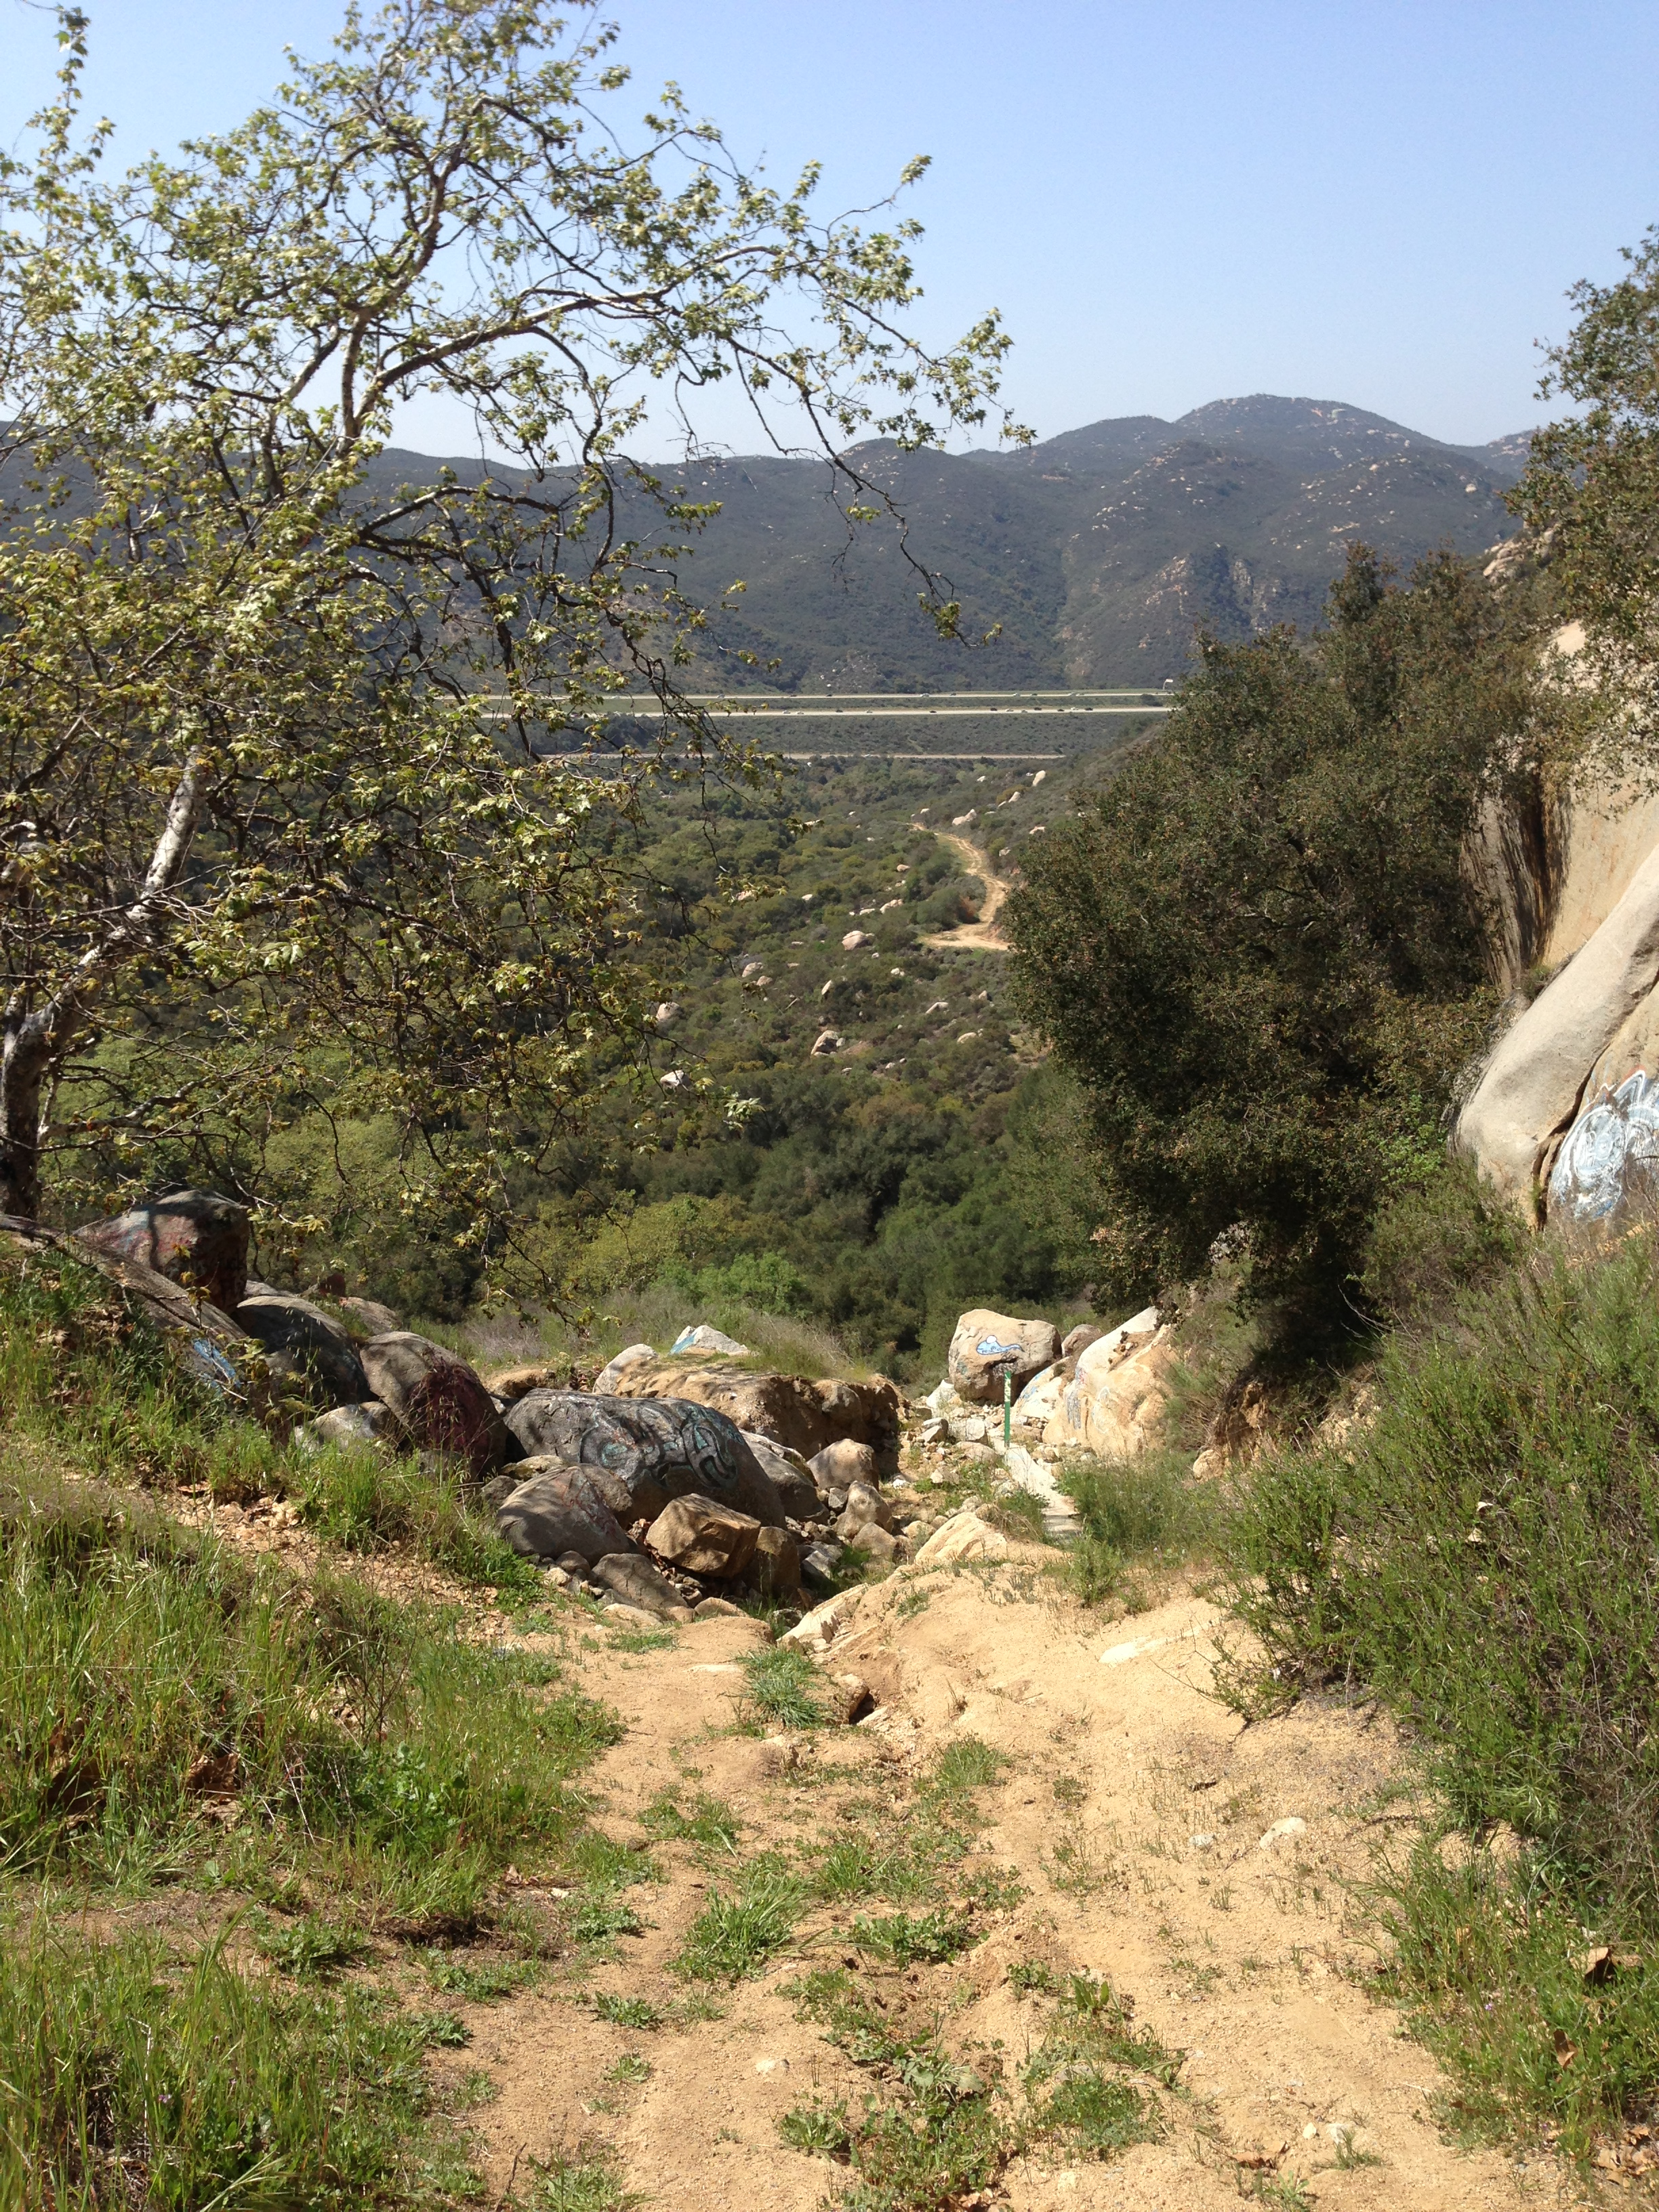 Area around Lawrence Welk Caves